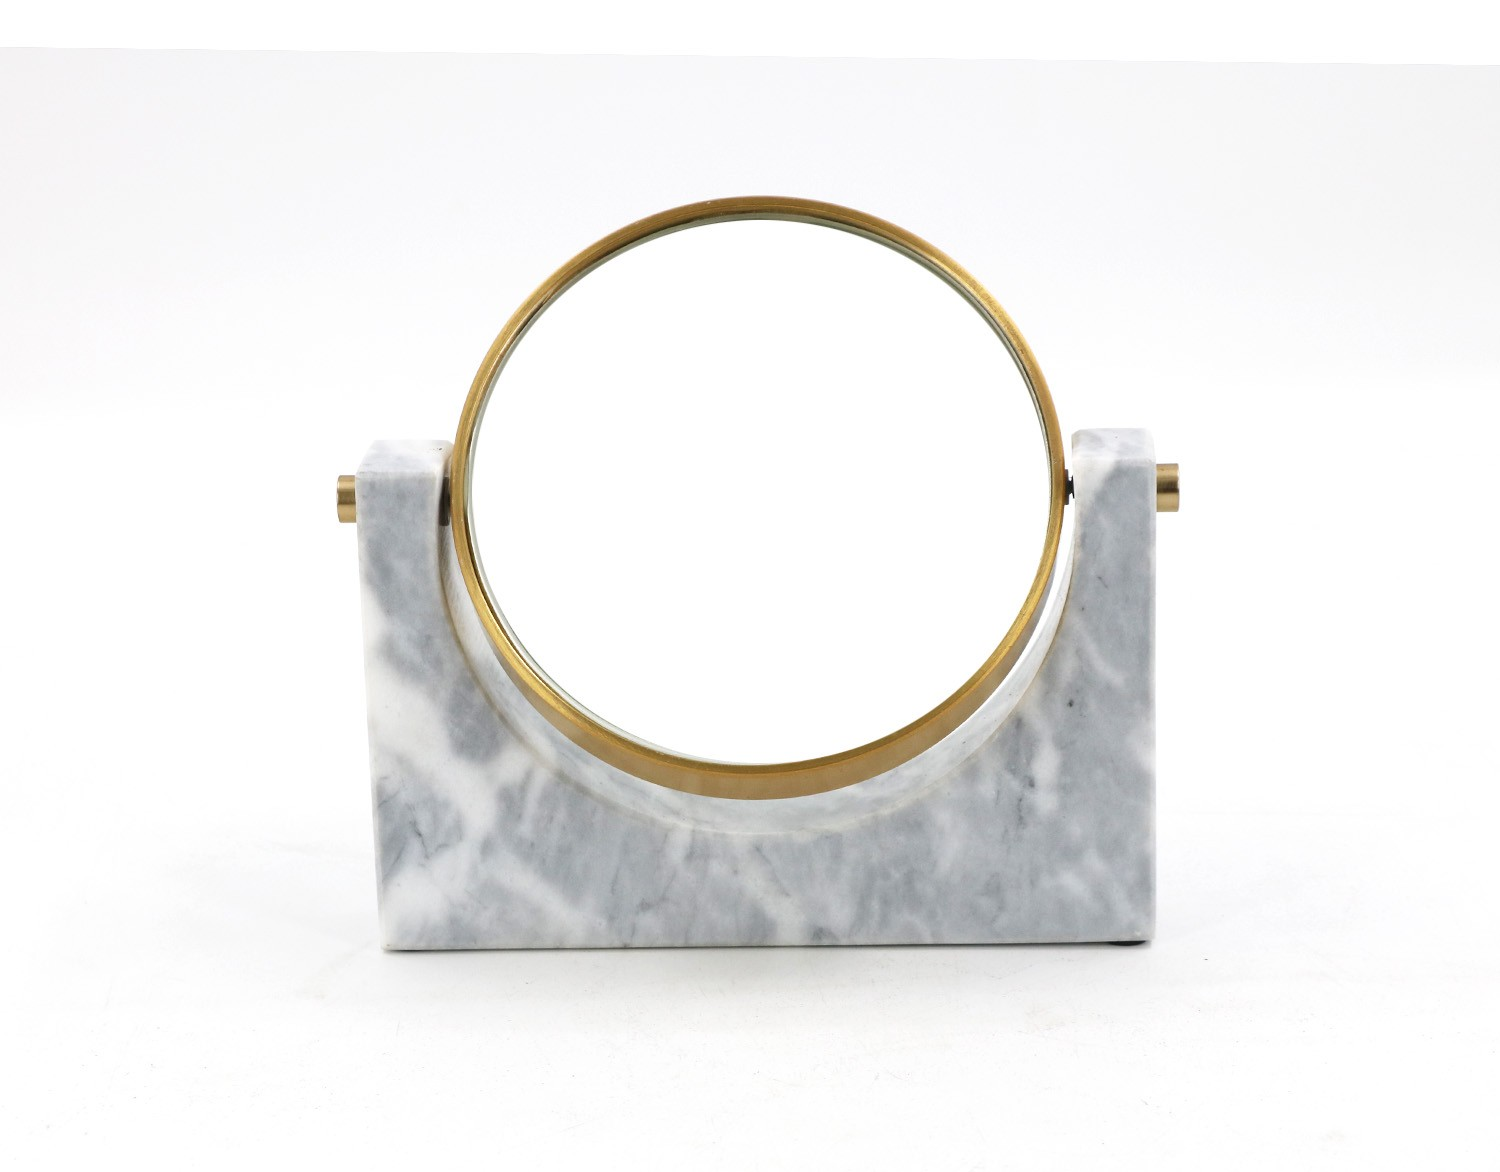 Cheap marble double sided makeup mirror, china marble vanity mirror price